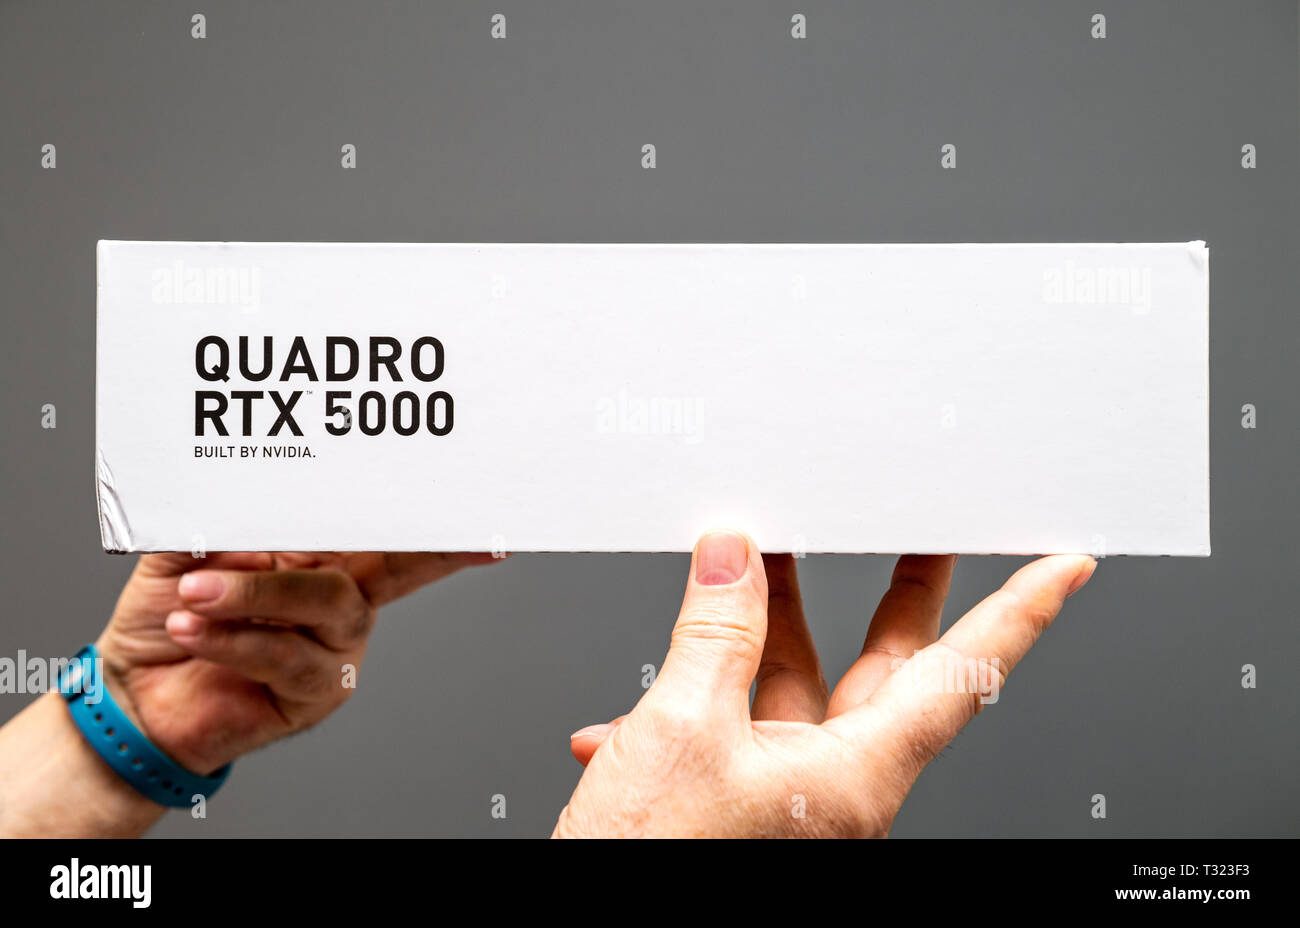 Paris France - Mar 28 2019: Senior man showing cardboard boxes before unboxing of Nvidia Quadro RTX 5000 workstation GPU featuring new streaming multiprocessors tensor cores - gray background - Stock Image